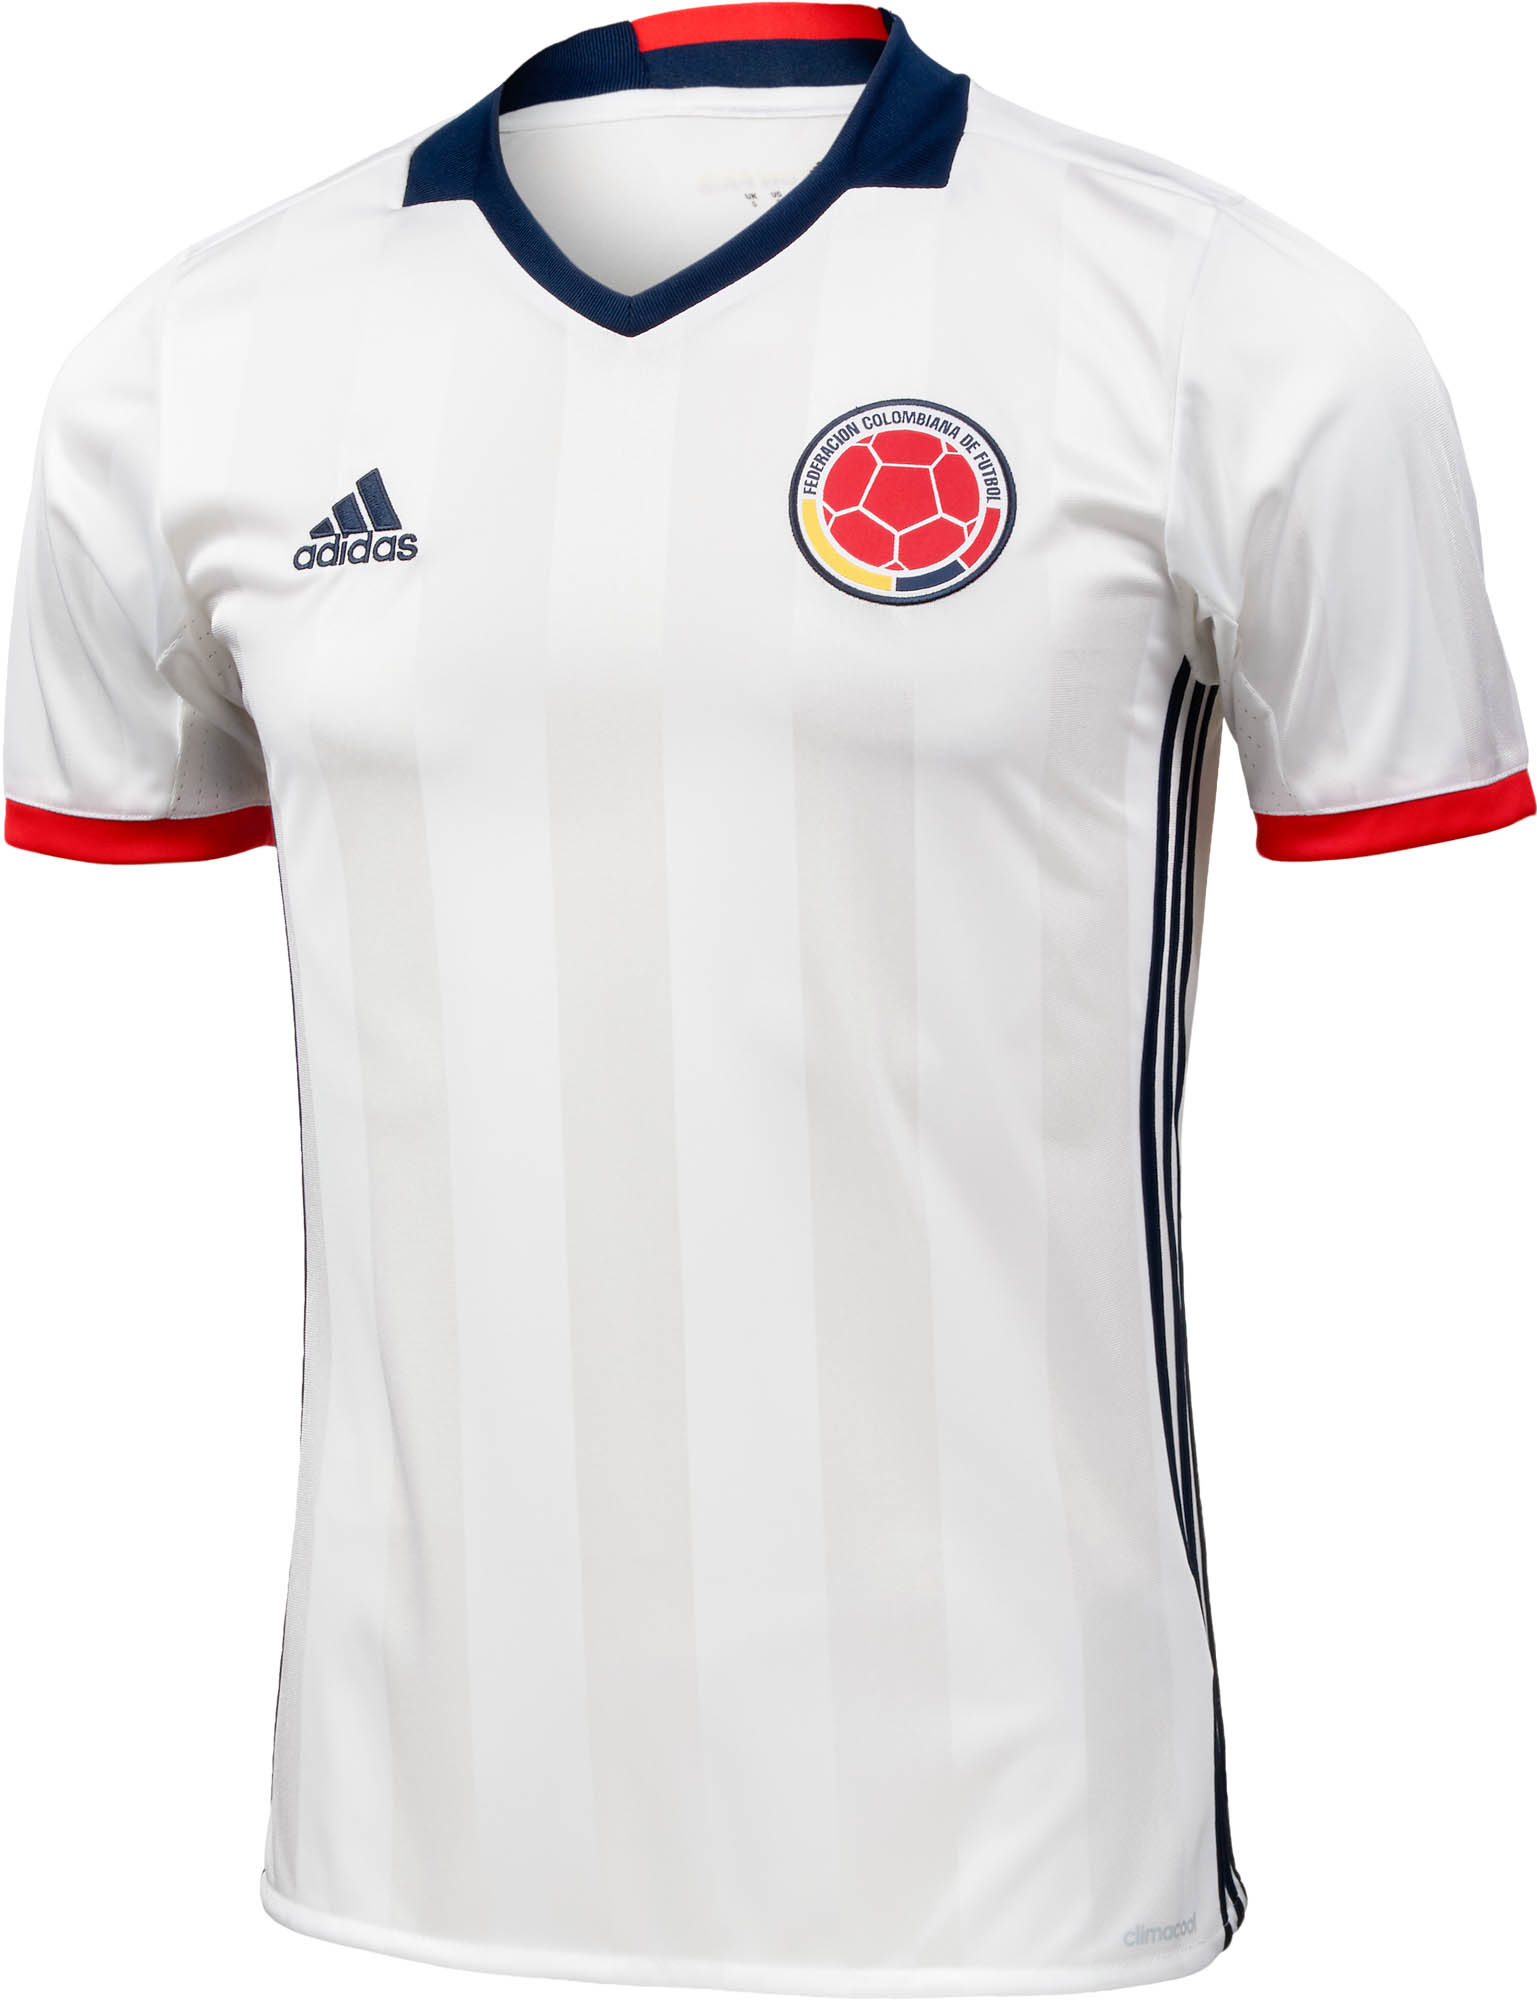 75448e47715 adidas Kids Colombia Home Jersey - 2016 Colombia Jerseys